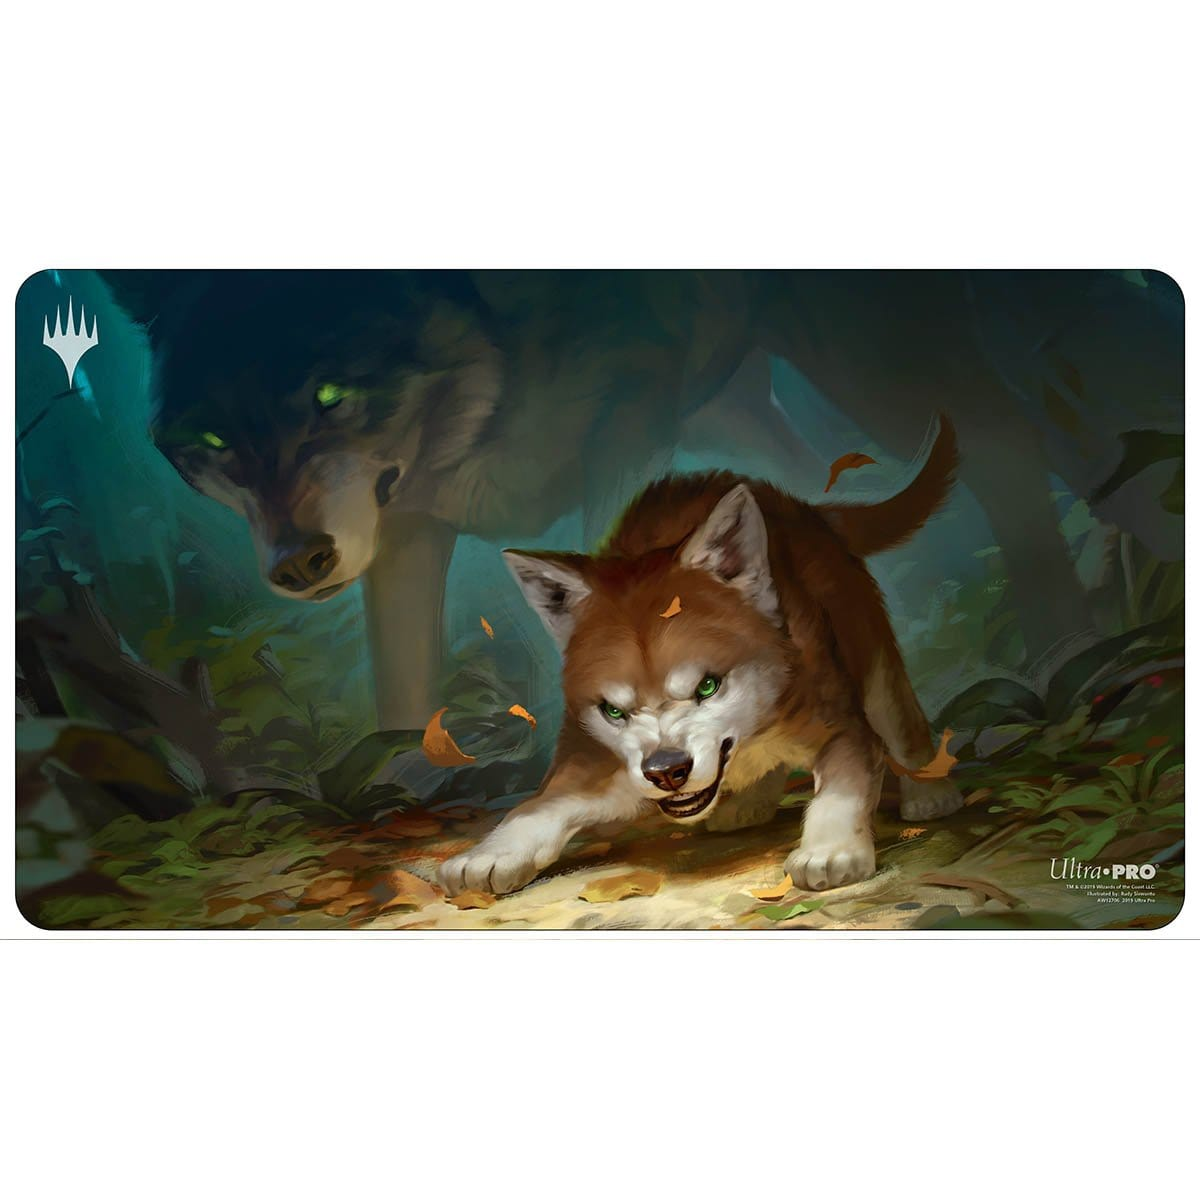 Ferocious Pup Playmat - Playmat - Original Magic Art - Accessories for Magic the Gathering and other card games